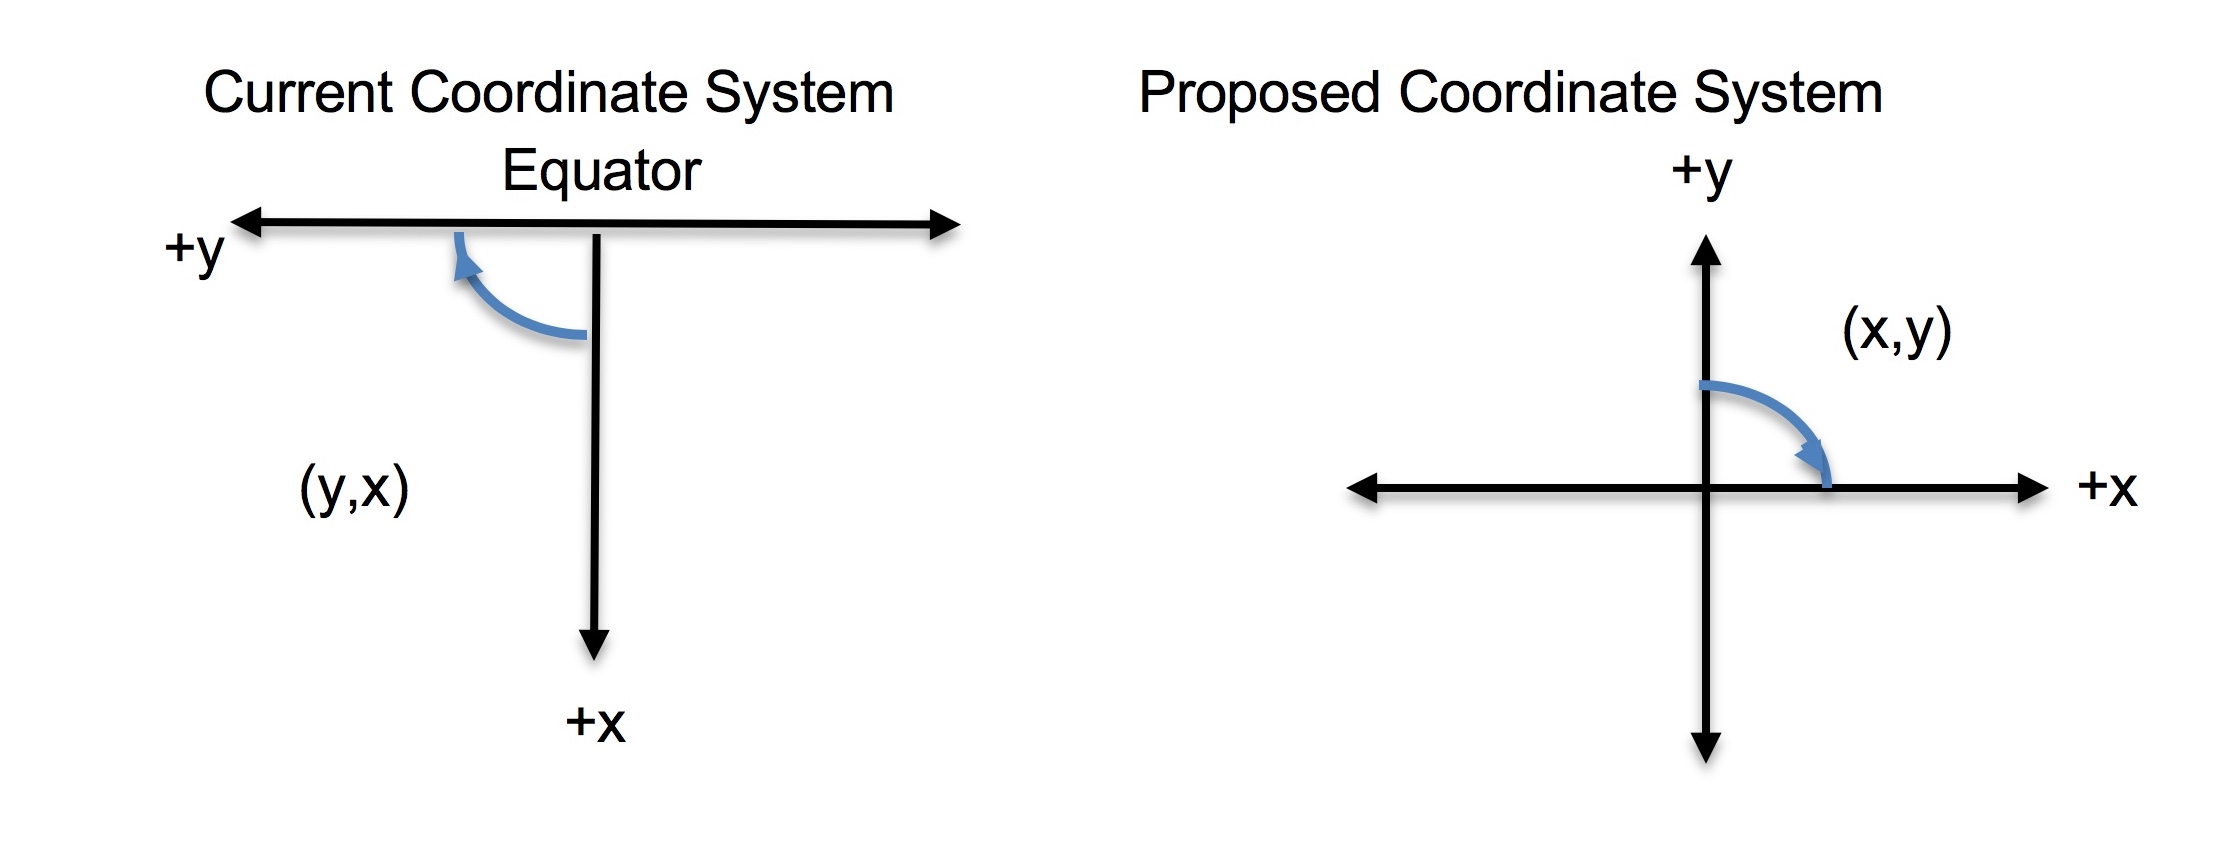 Fig. 1: Current vs proposed coordinate system.